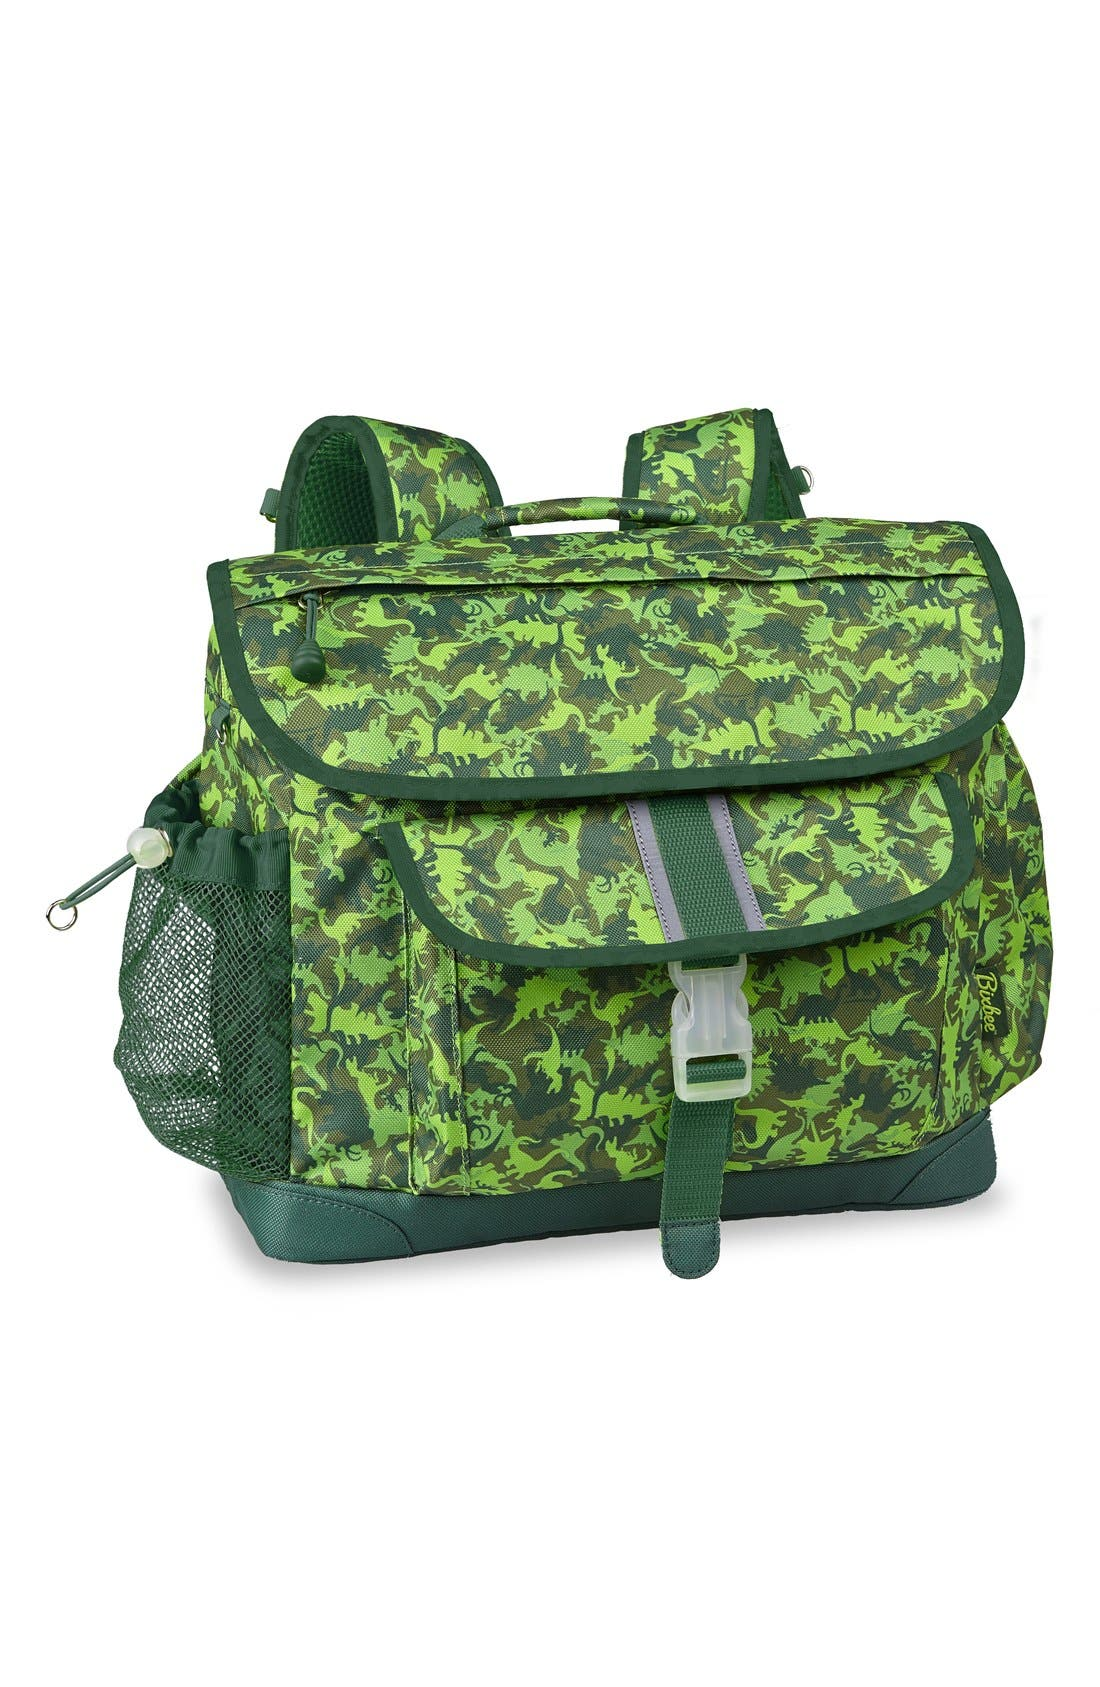 Bixbee 'Large Dino Camo' Water Resistant Backpack (Kids)